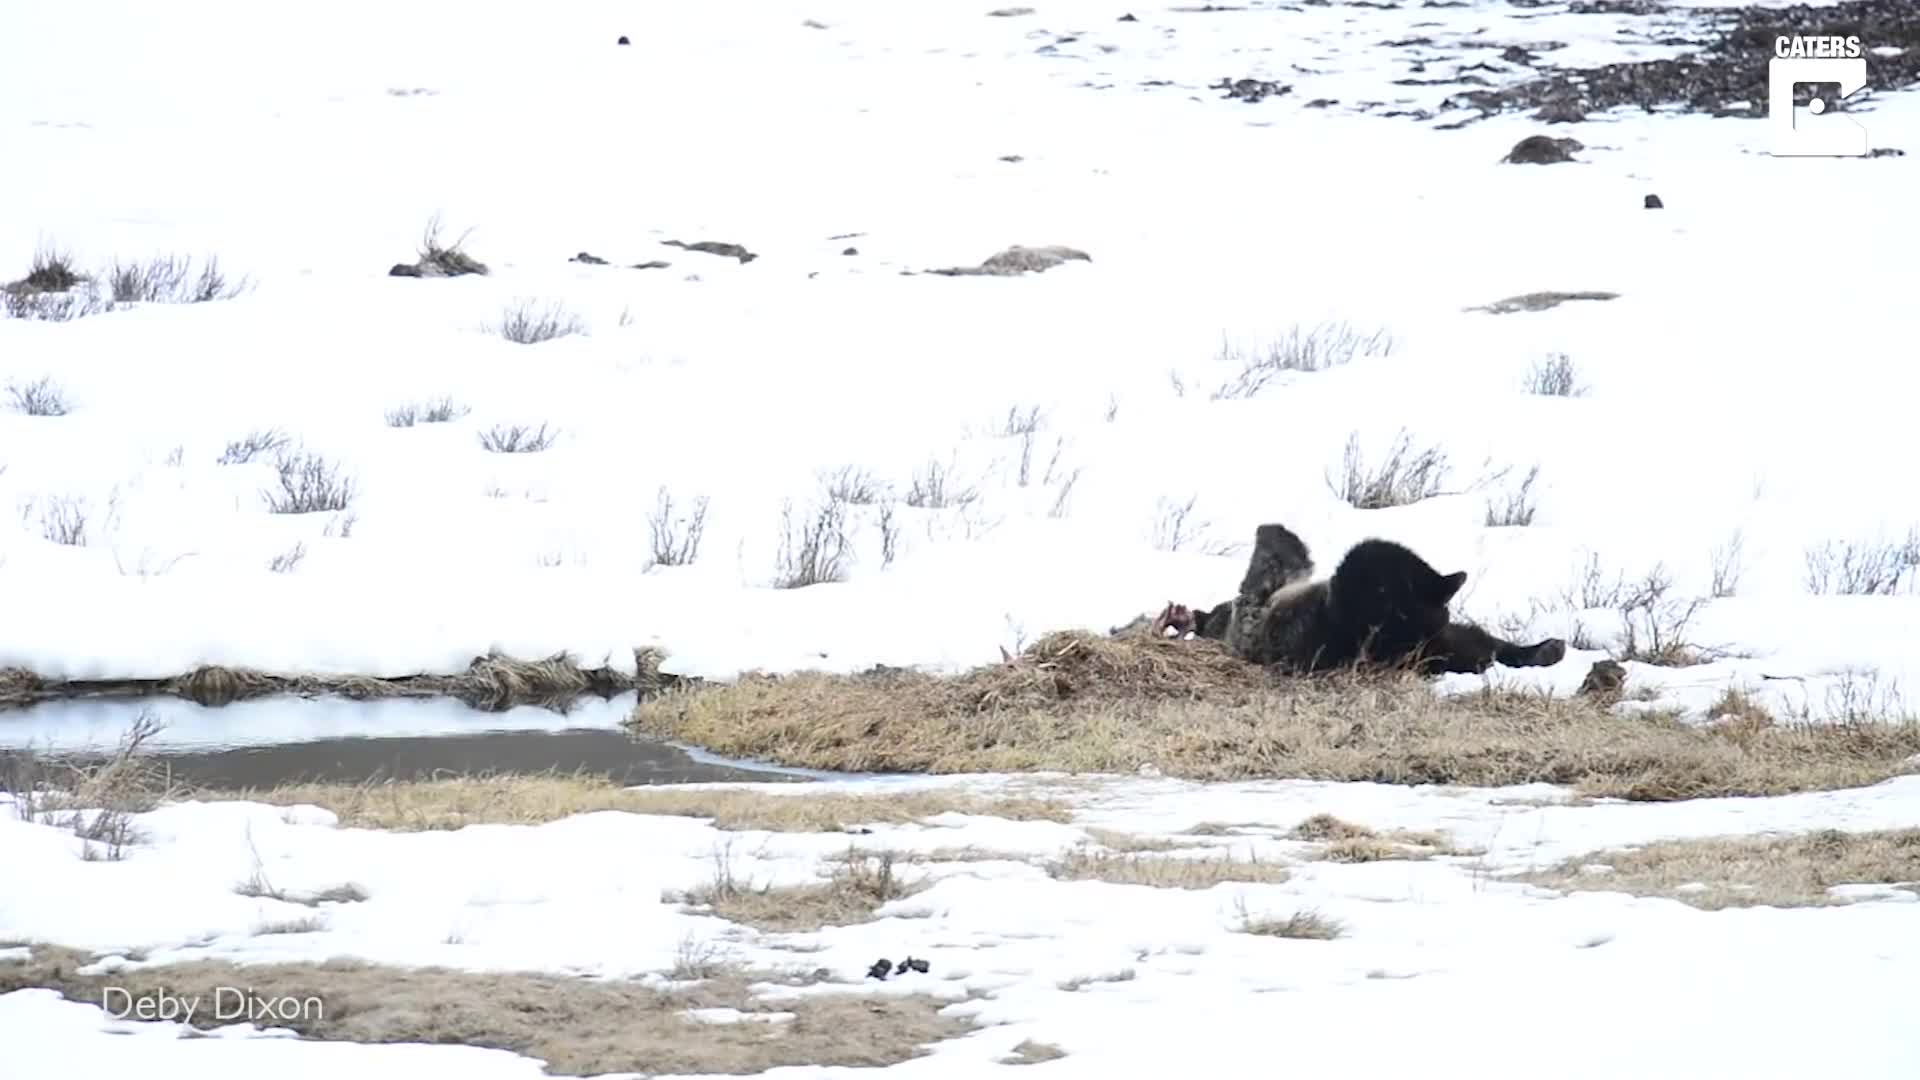 BEAR WITH ME: MALE GRIZZLY BEAR STRUGGLES WITH HIS YOGA POSES IN HILARIOUS WILDLIFE VIDEO